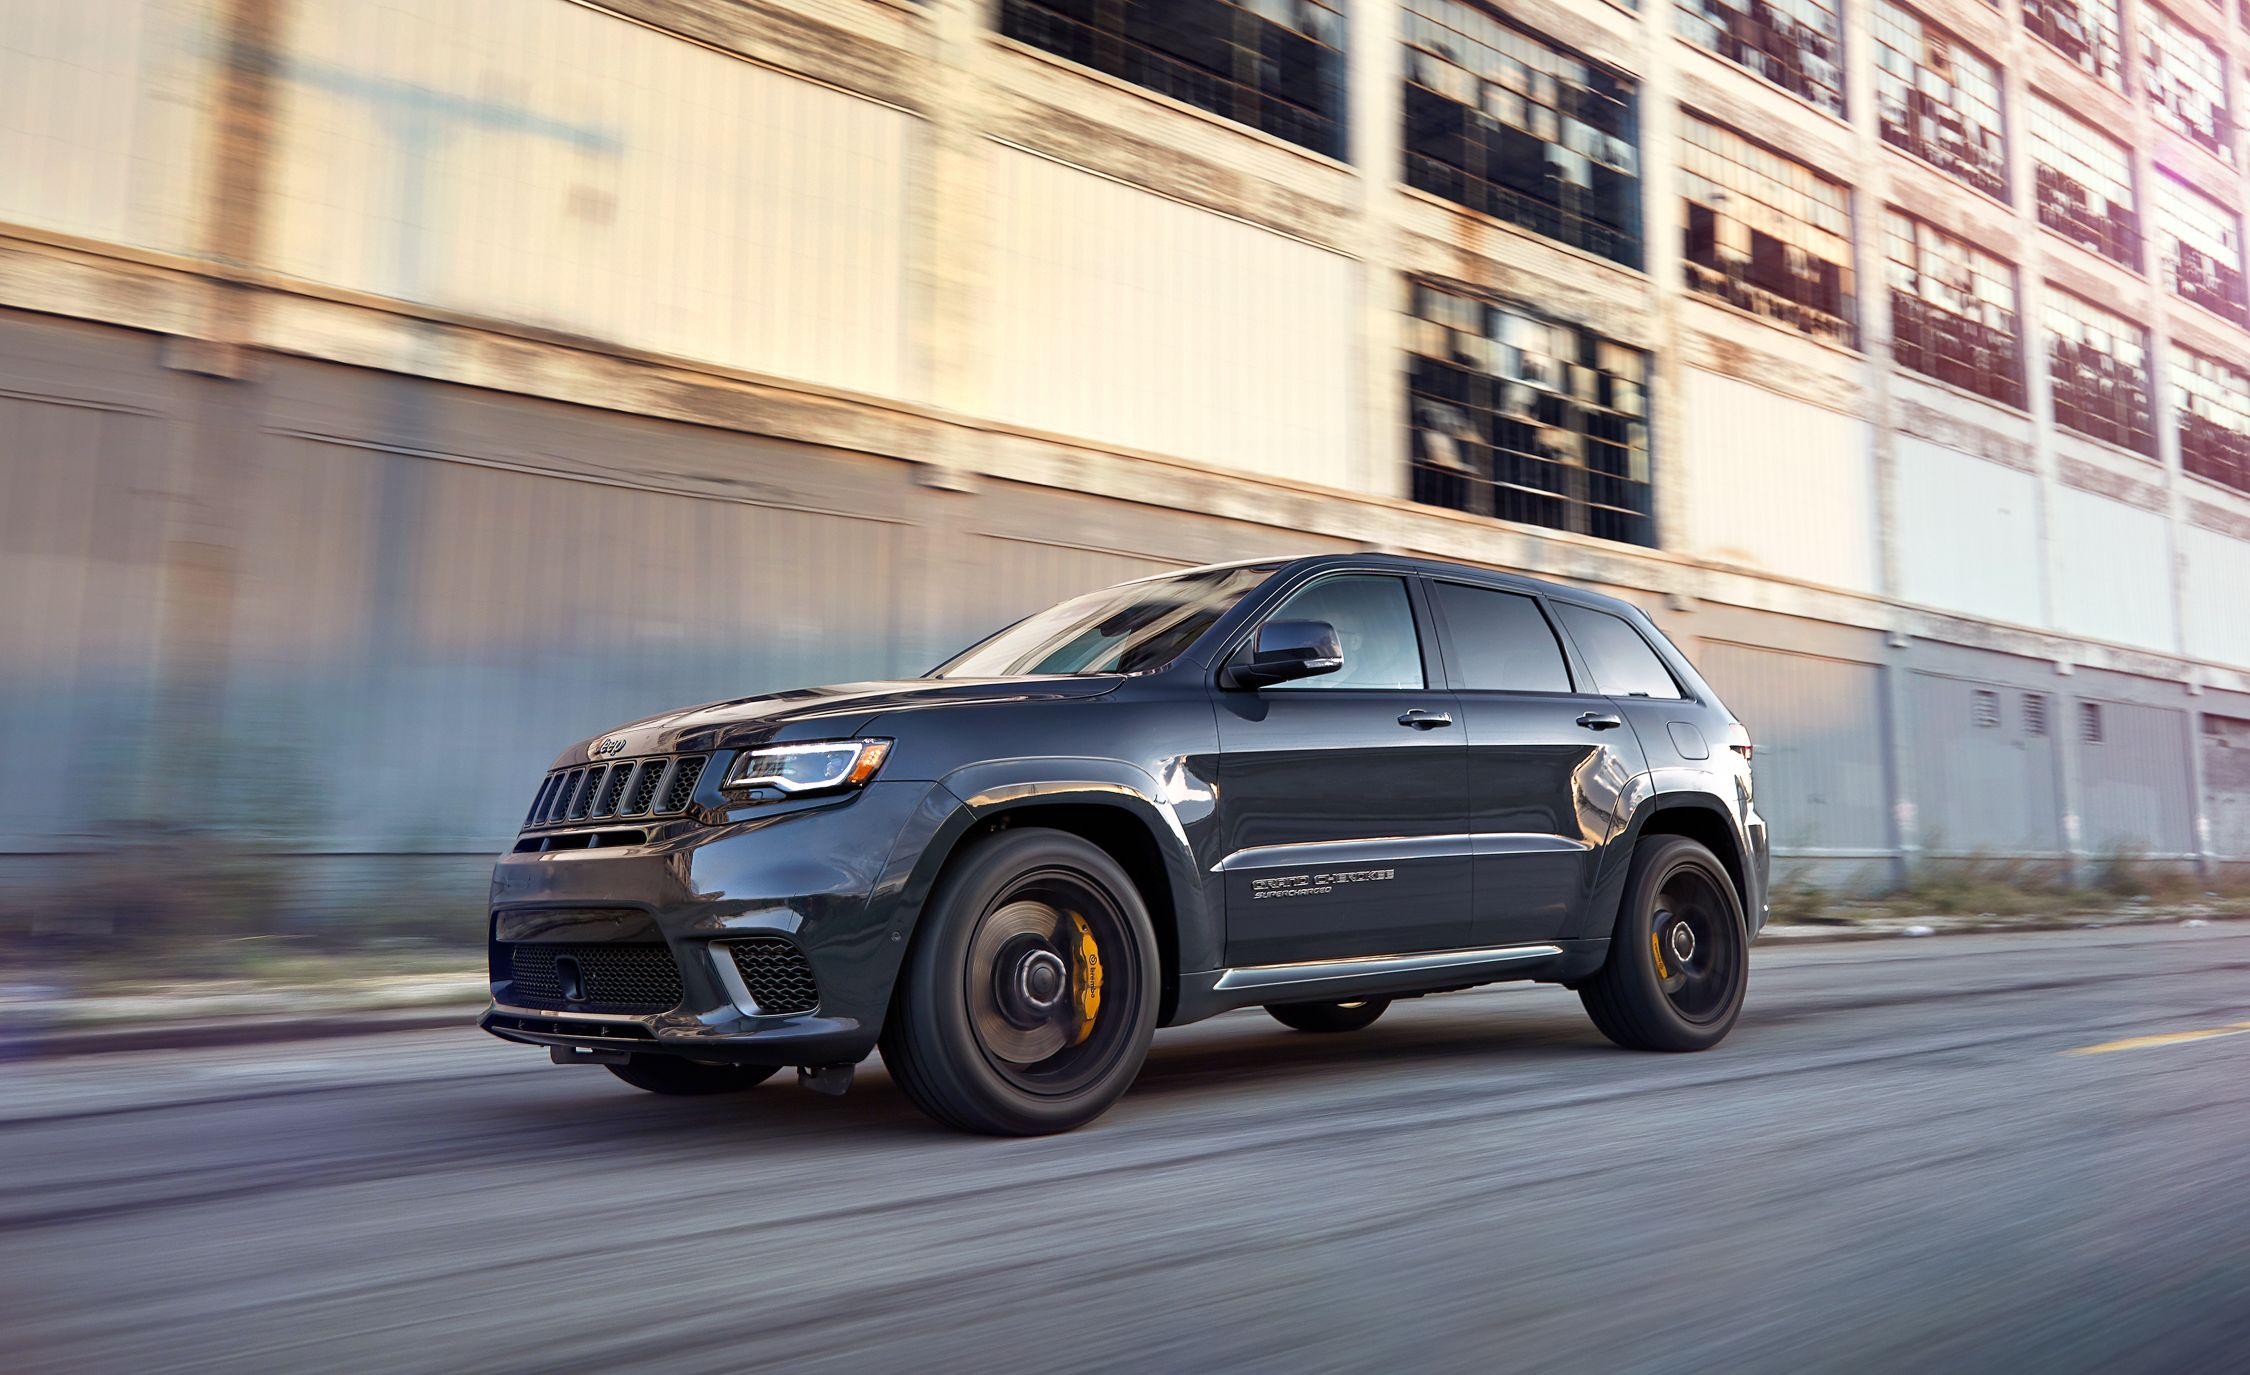 2019 Jeep Grand Cherokee Trackhawk Reviews | Jeep Grand Cherokee Trackhawk  Price, Photos, and Specs | Car and Driver